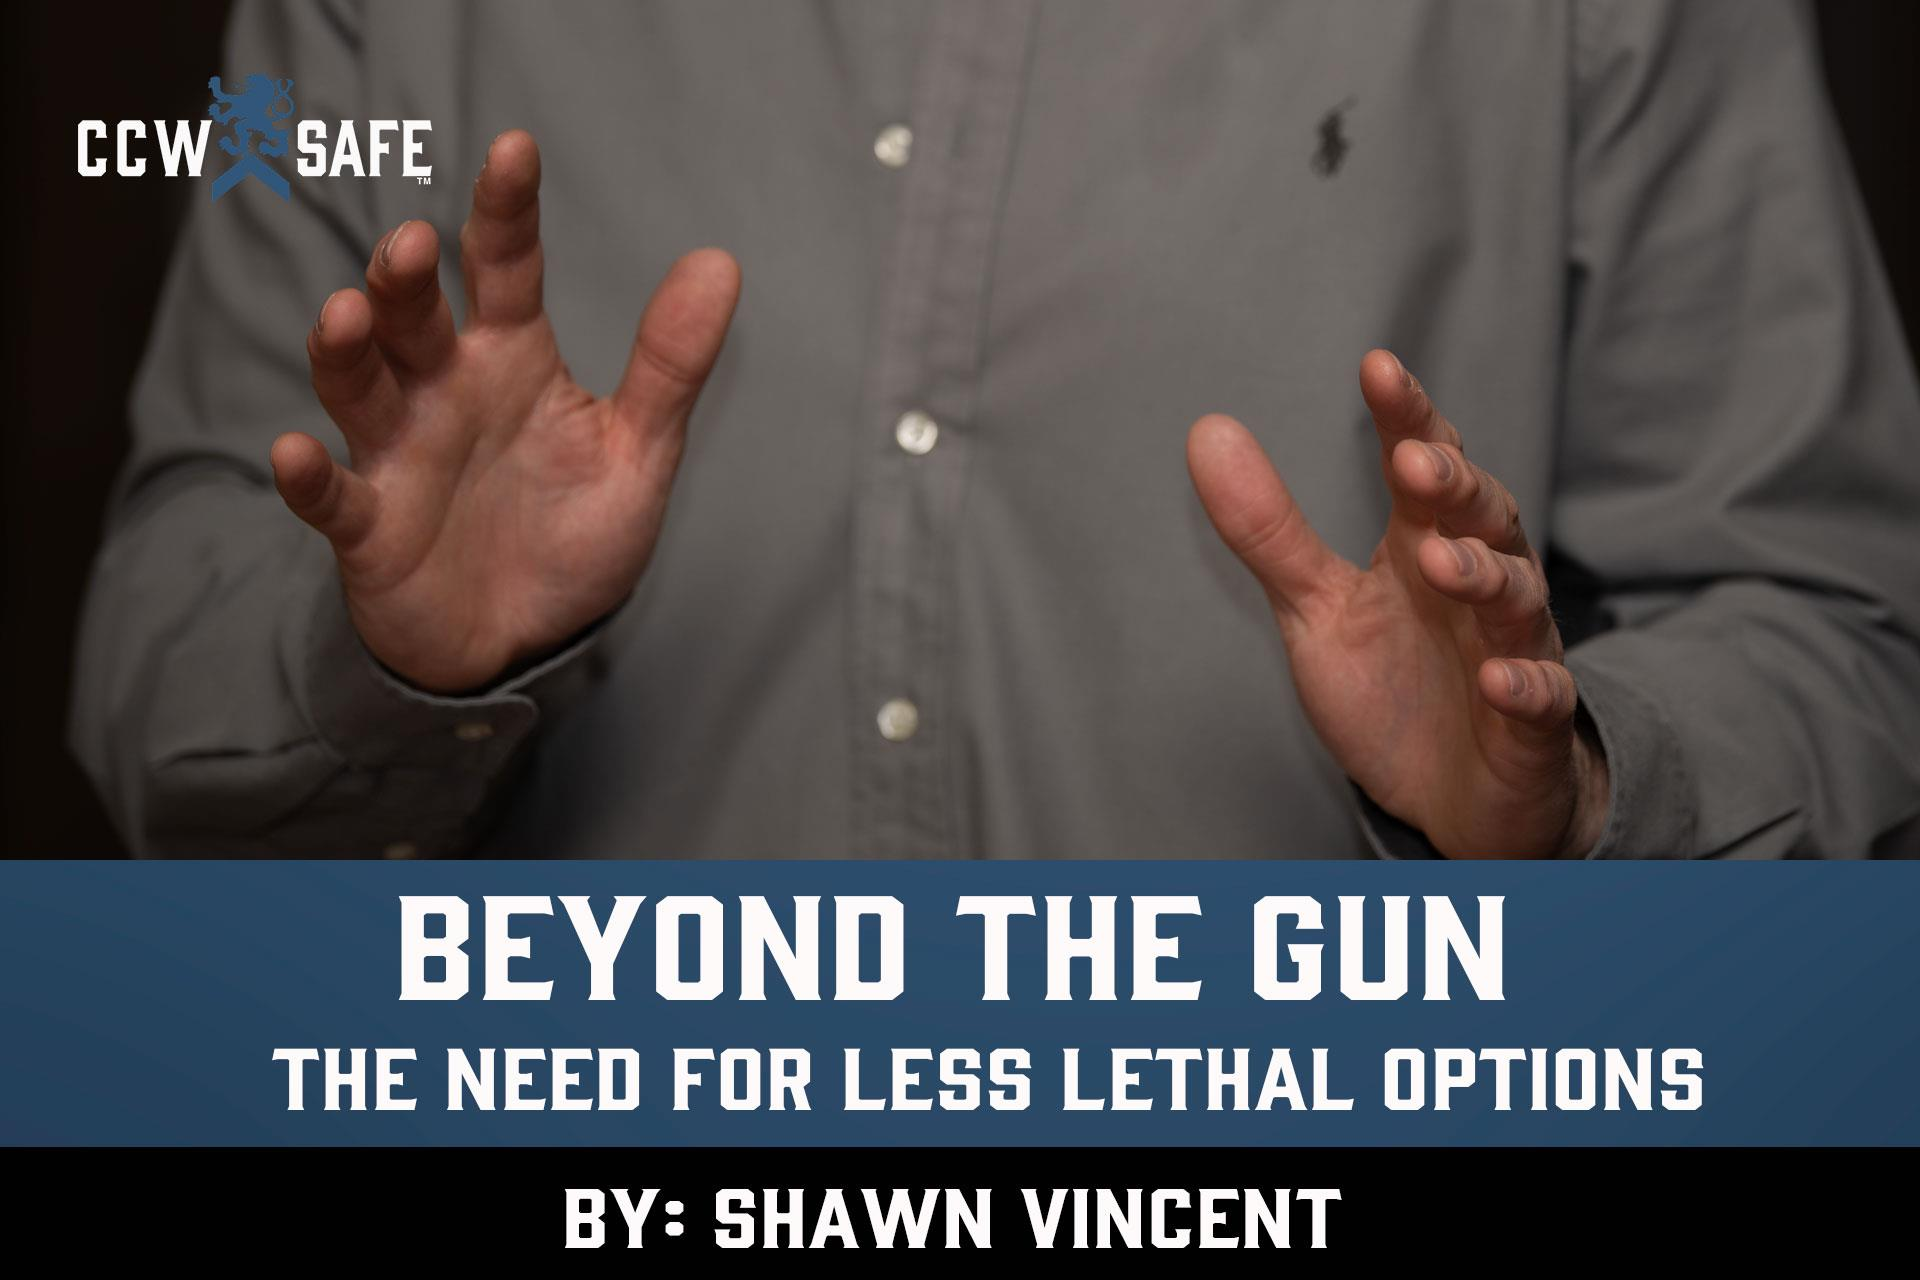 Beyond the Gun: The need for less lethal options